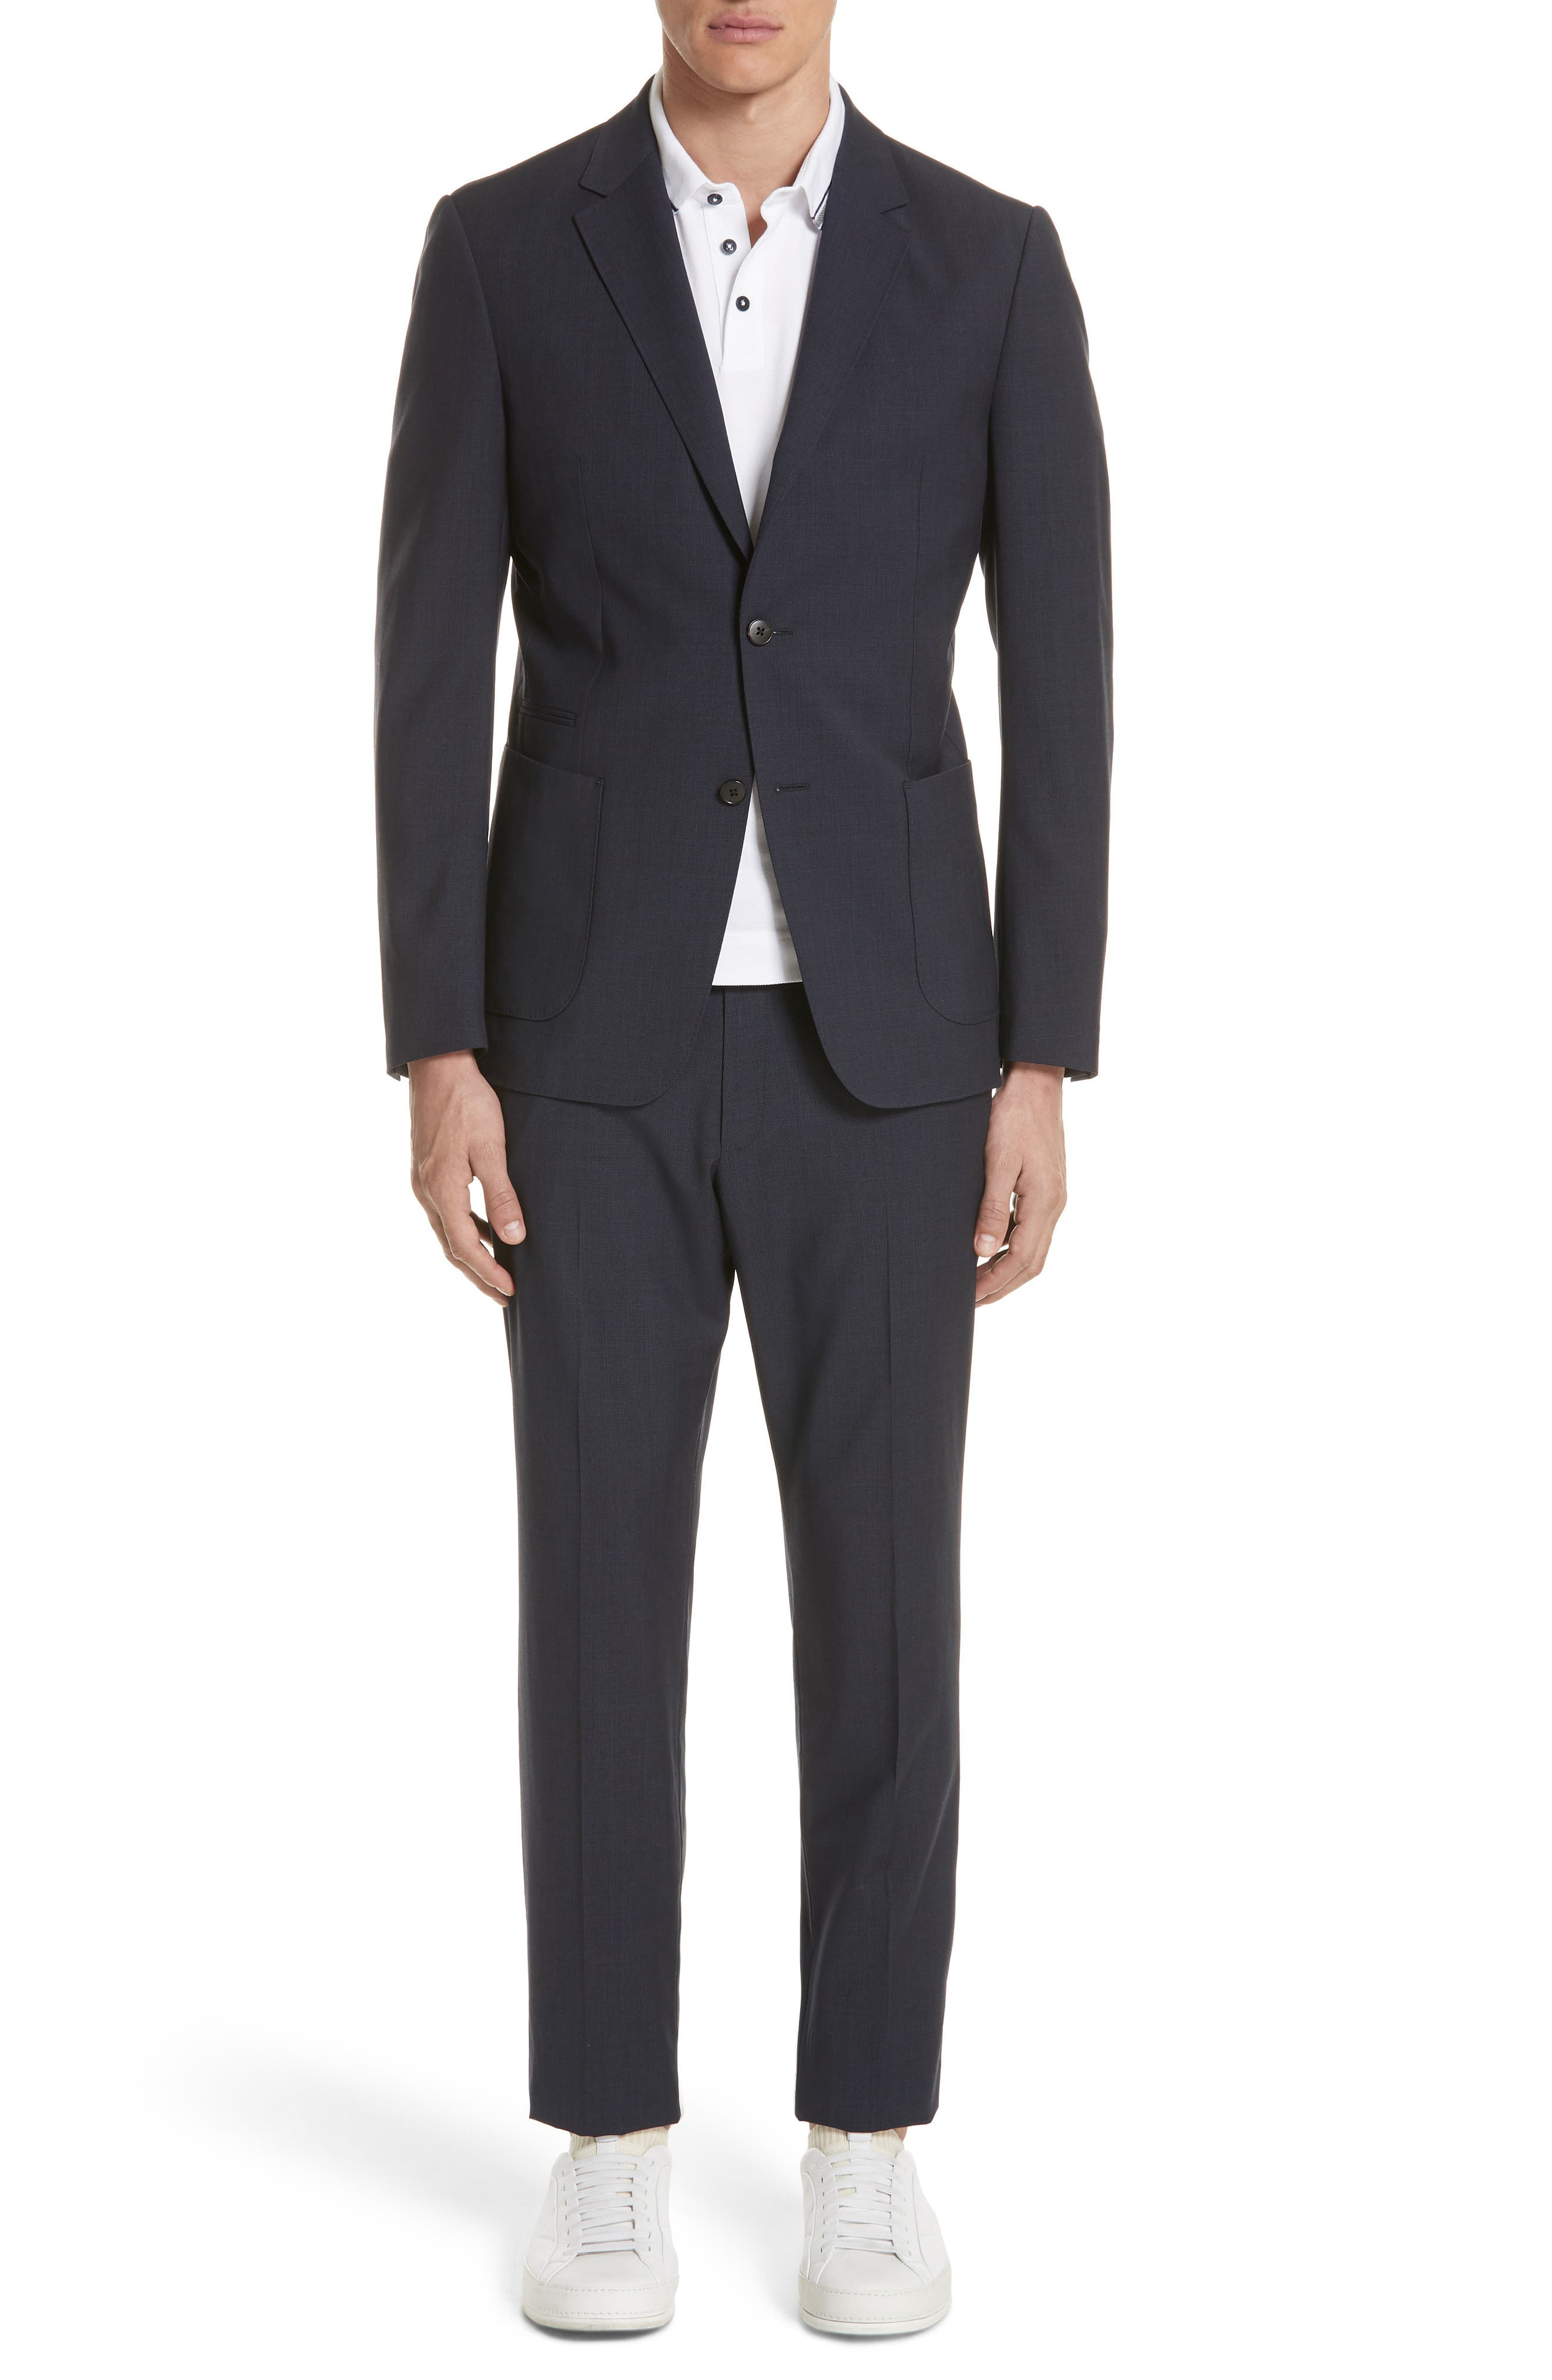 Z Zegna TECHMERINO™ Wash & Go Trim Fit Solid Wool Suit